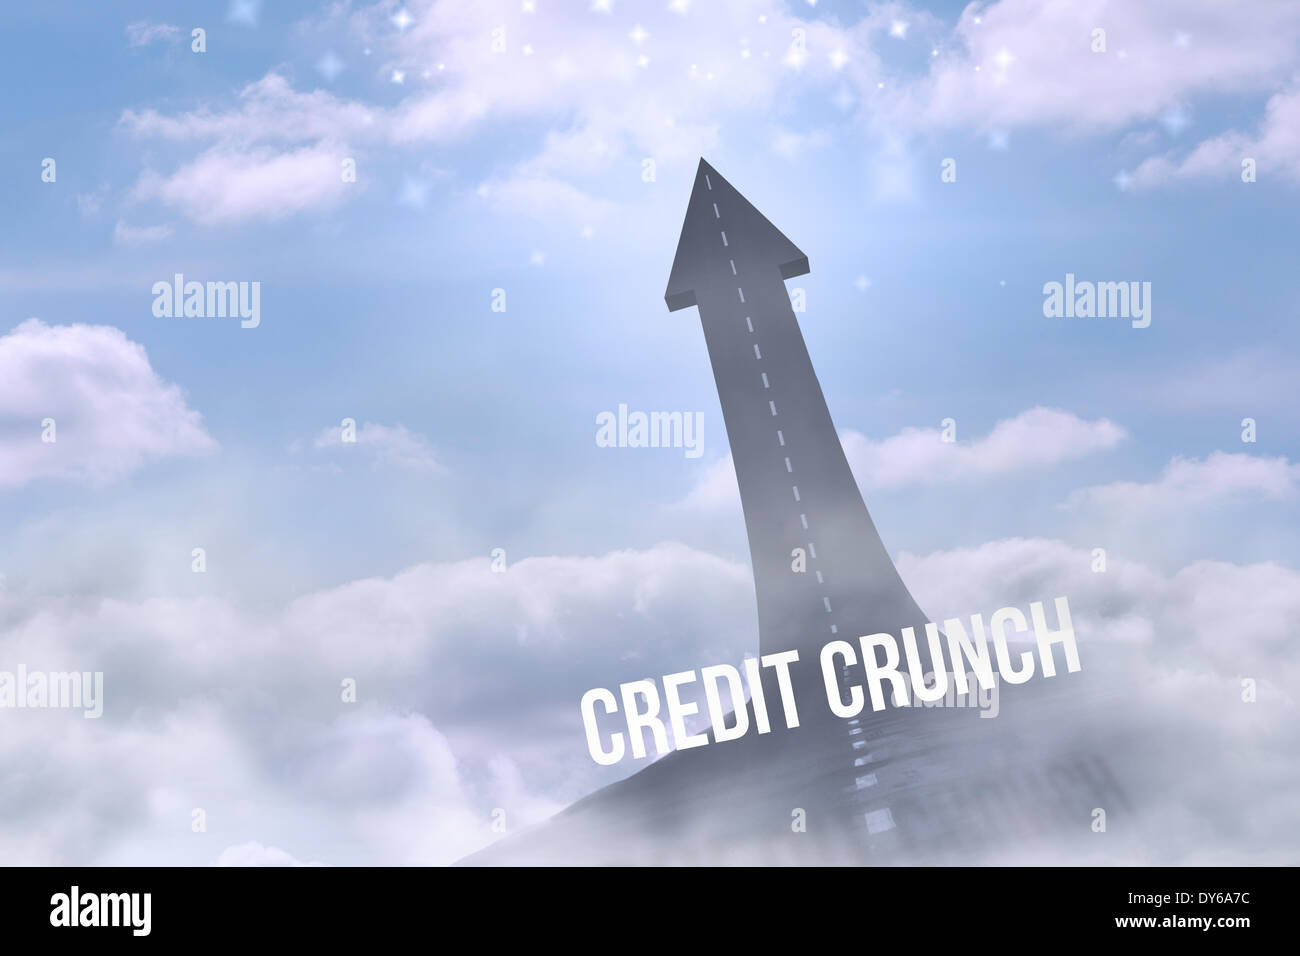 Credit crunch against road turning into arrow - Stock Image